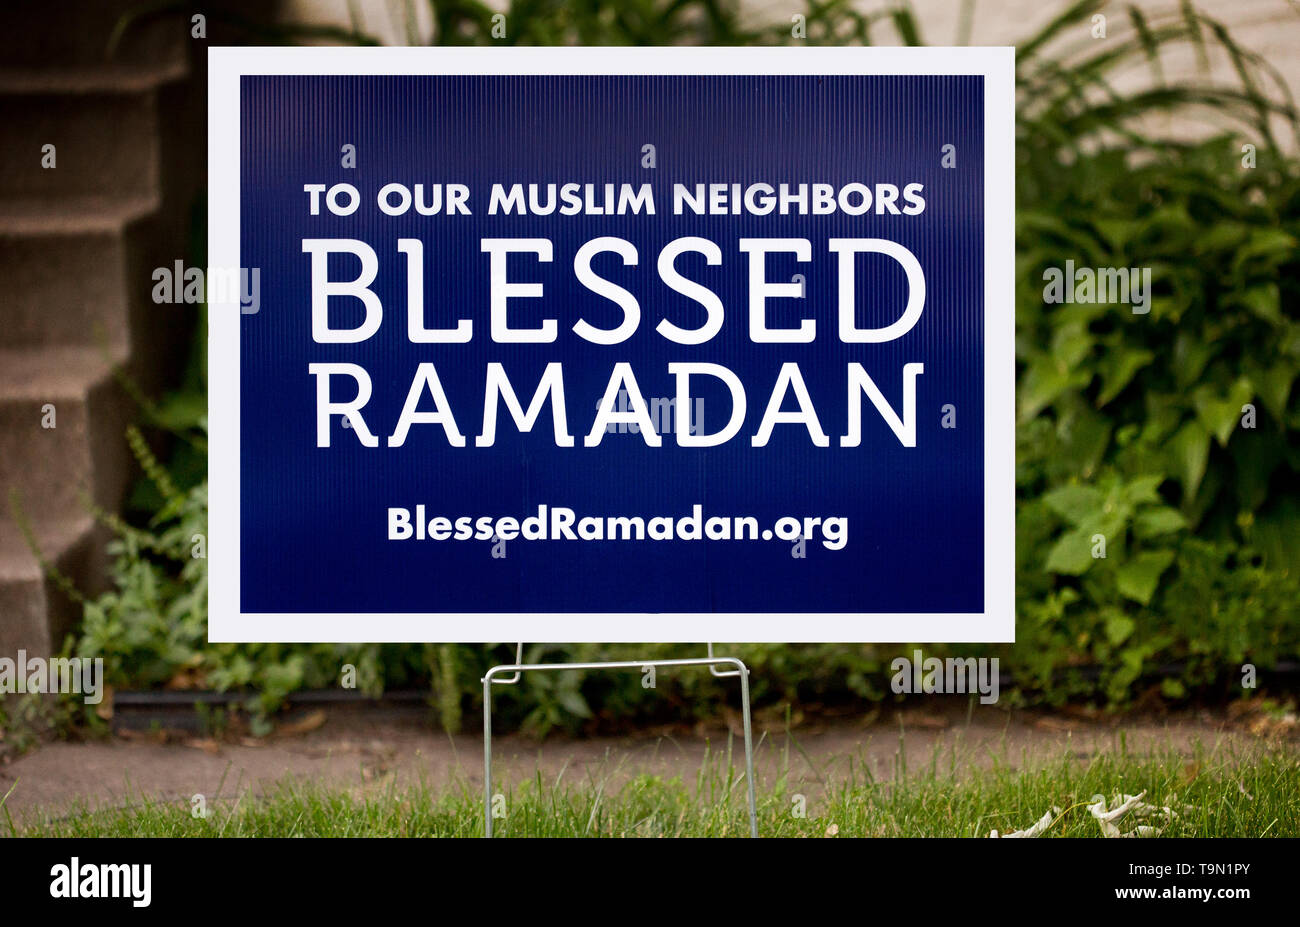 A yard sign stating To Our Muslim Neighbors - Blessed Ramadan - in St. Paul, Minnesota - Stock Image